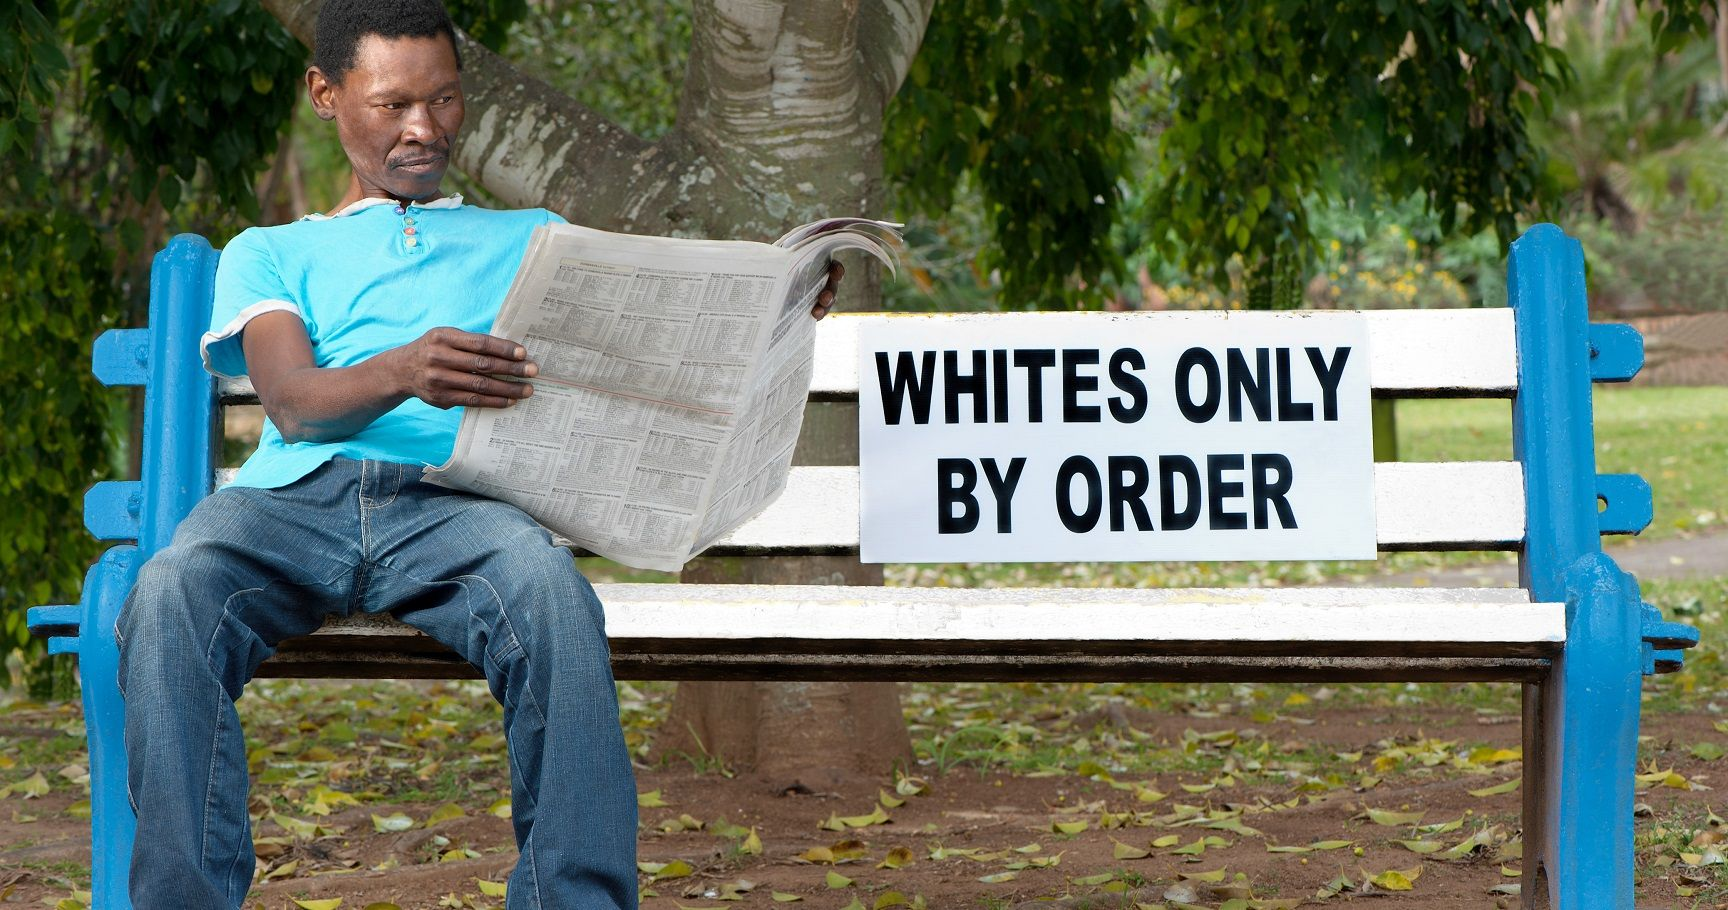 the major problem of racism throughout the world